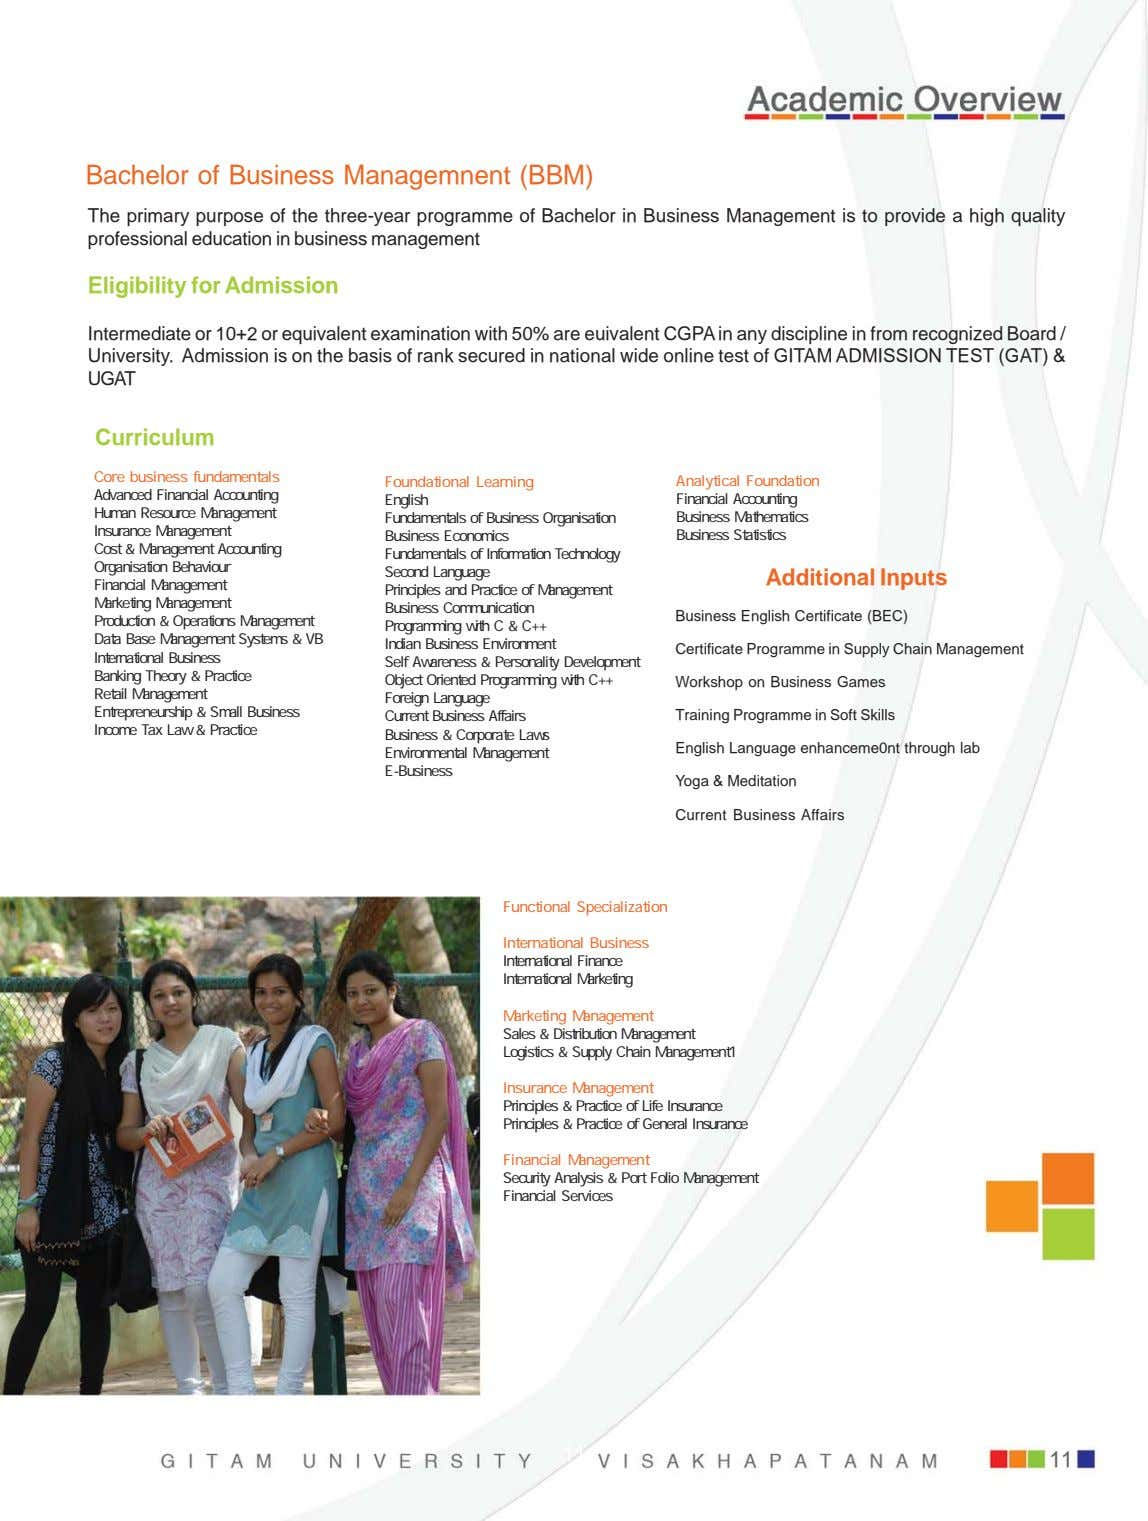 Bachelor of Business Managemnent (BBM) The primary purpose of the three-year programme of Bachelor in